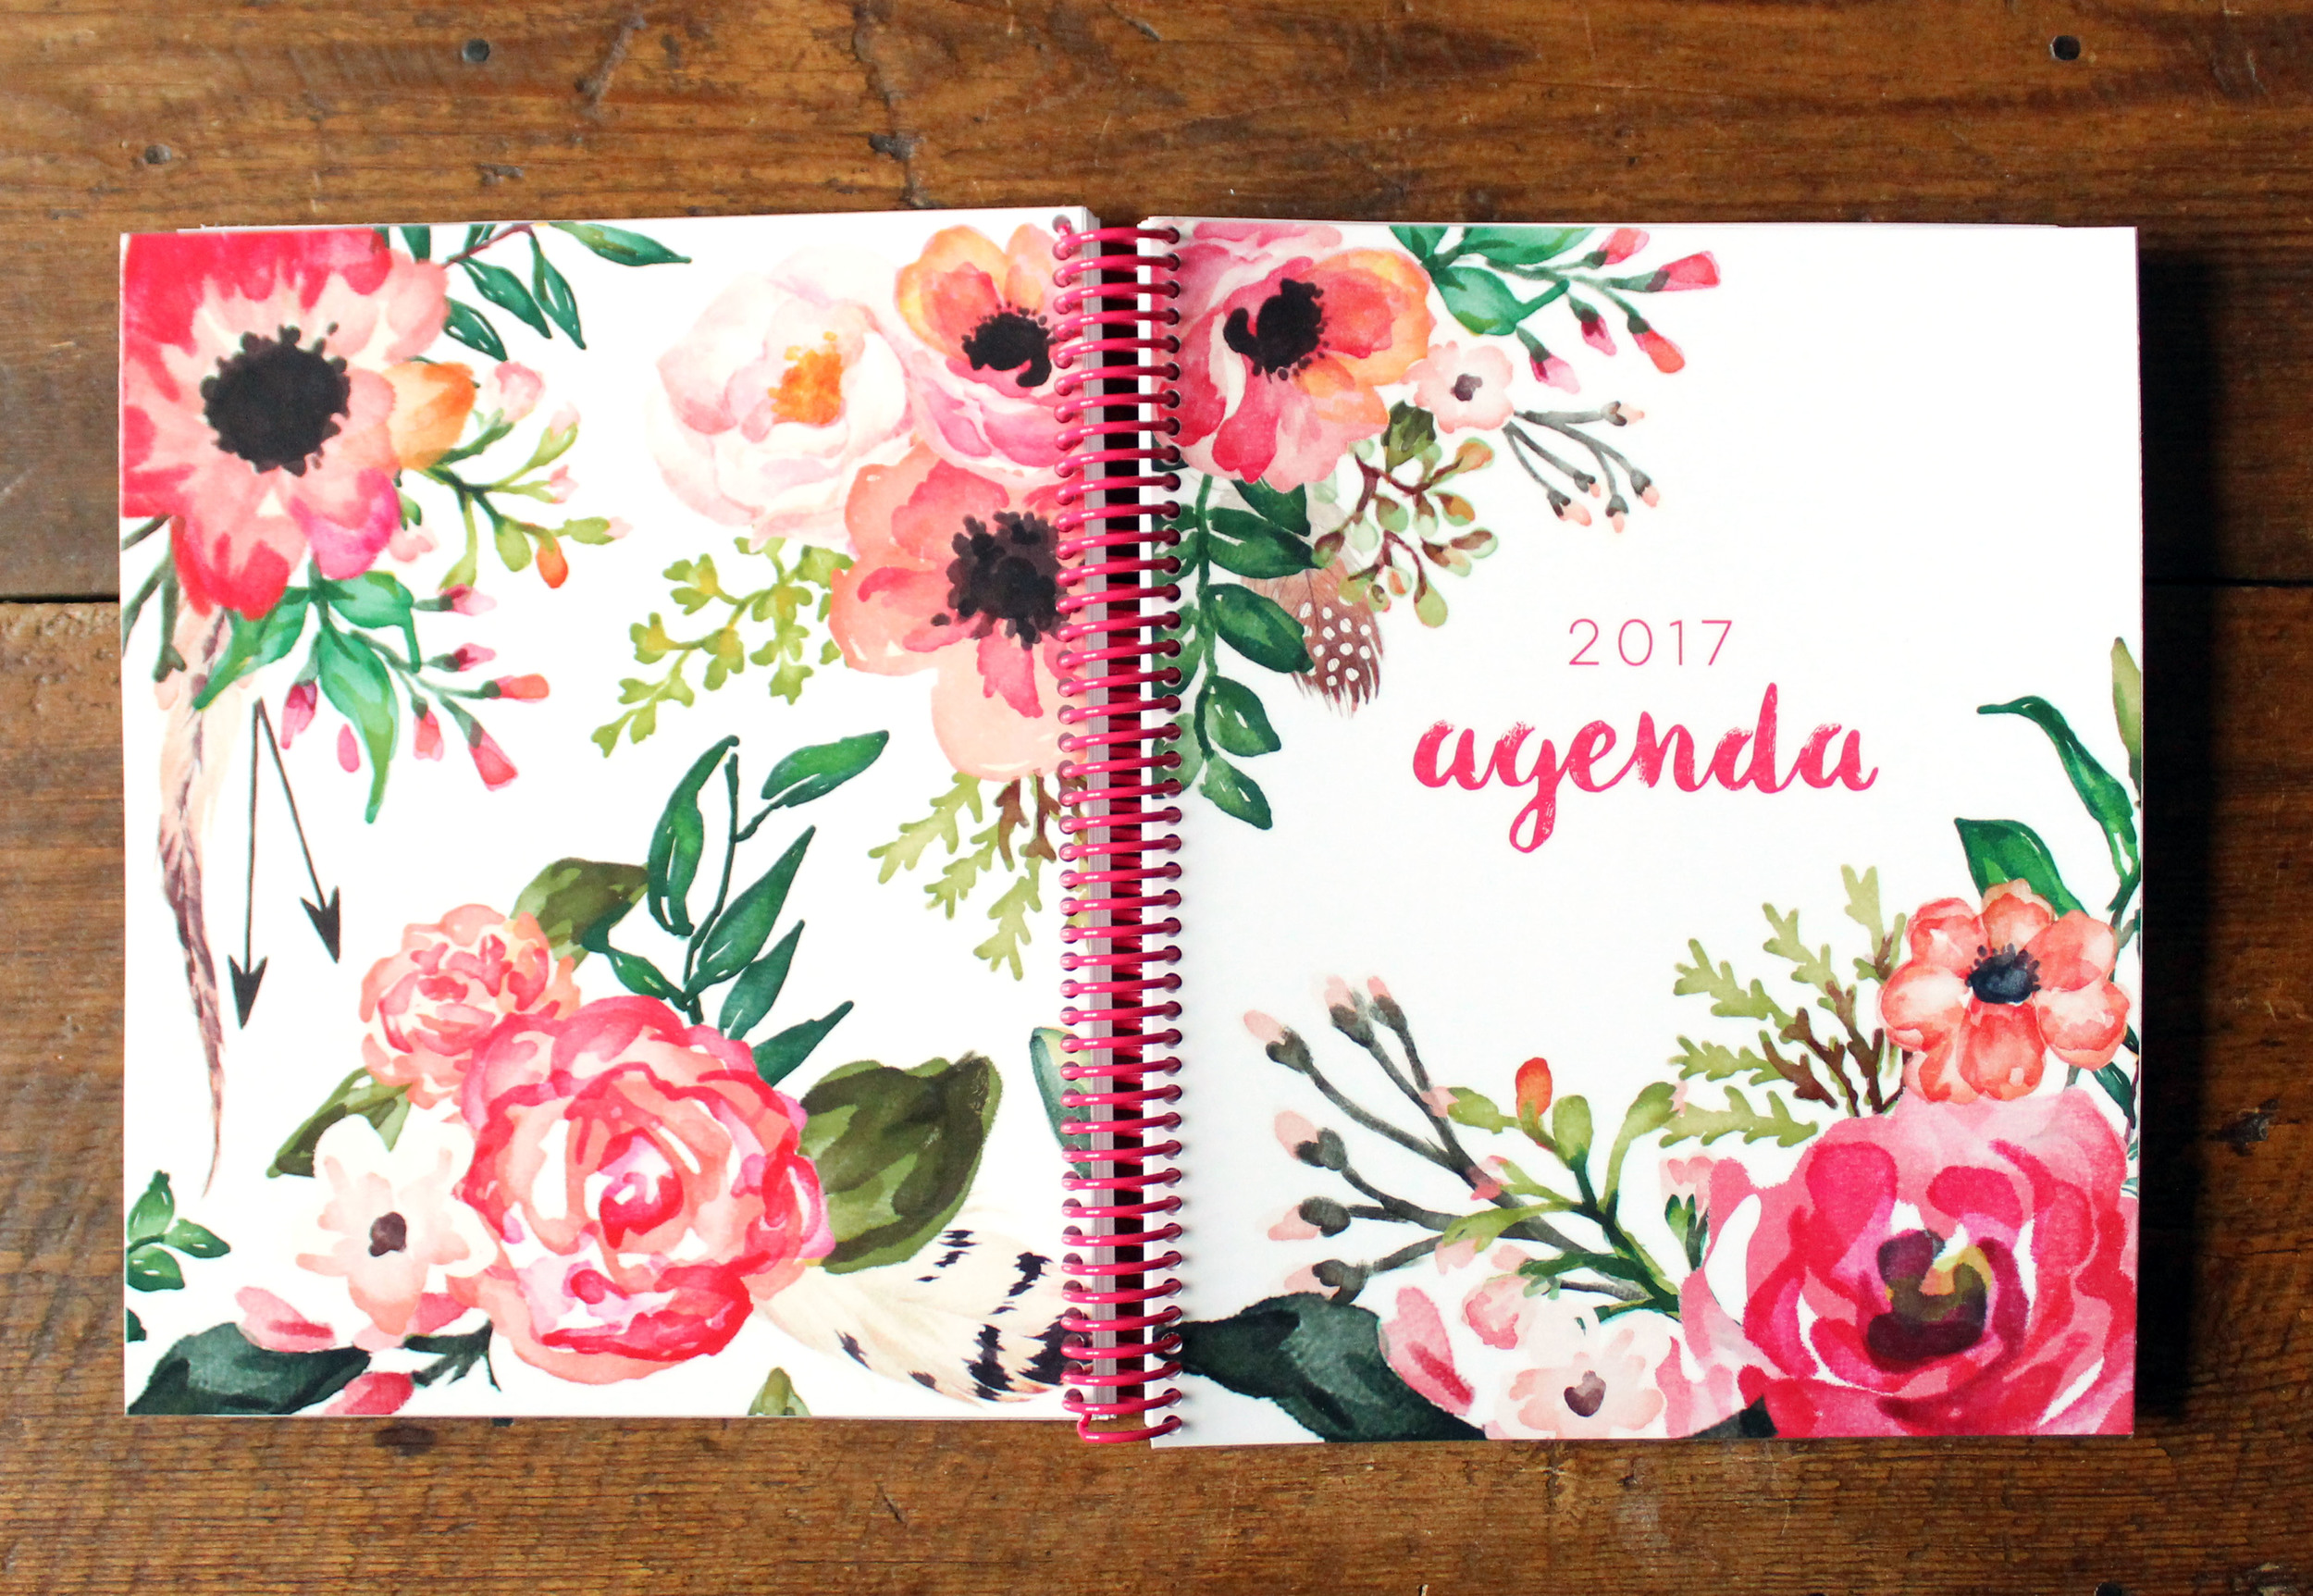 The lovely floral Front and Back Cover of the Jitney's Journeys 2017 Agenda!